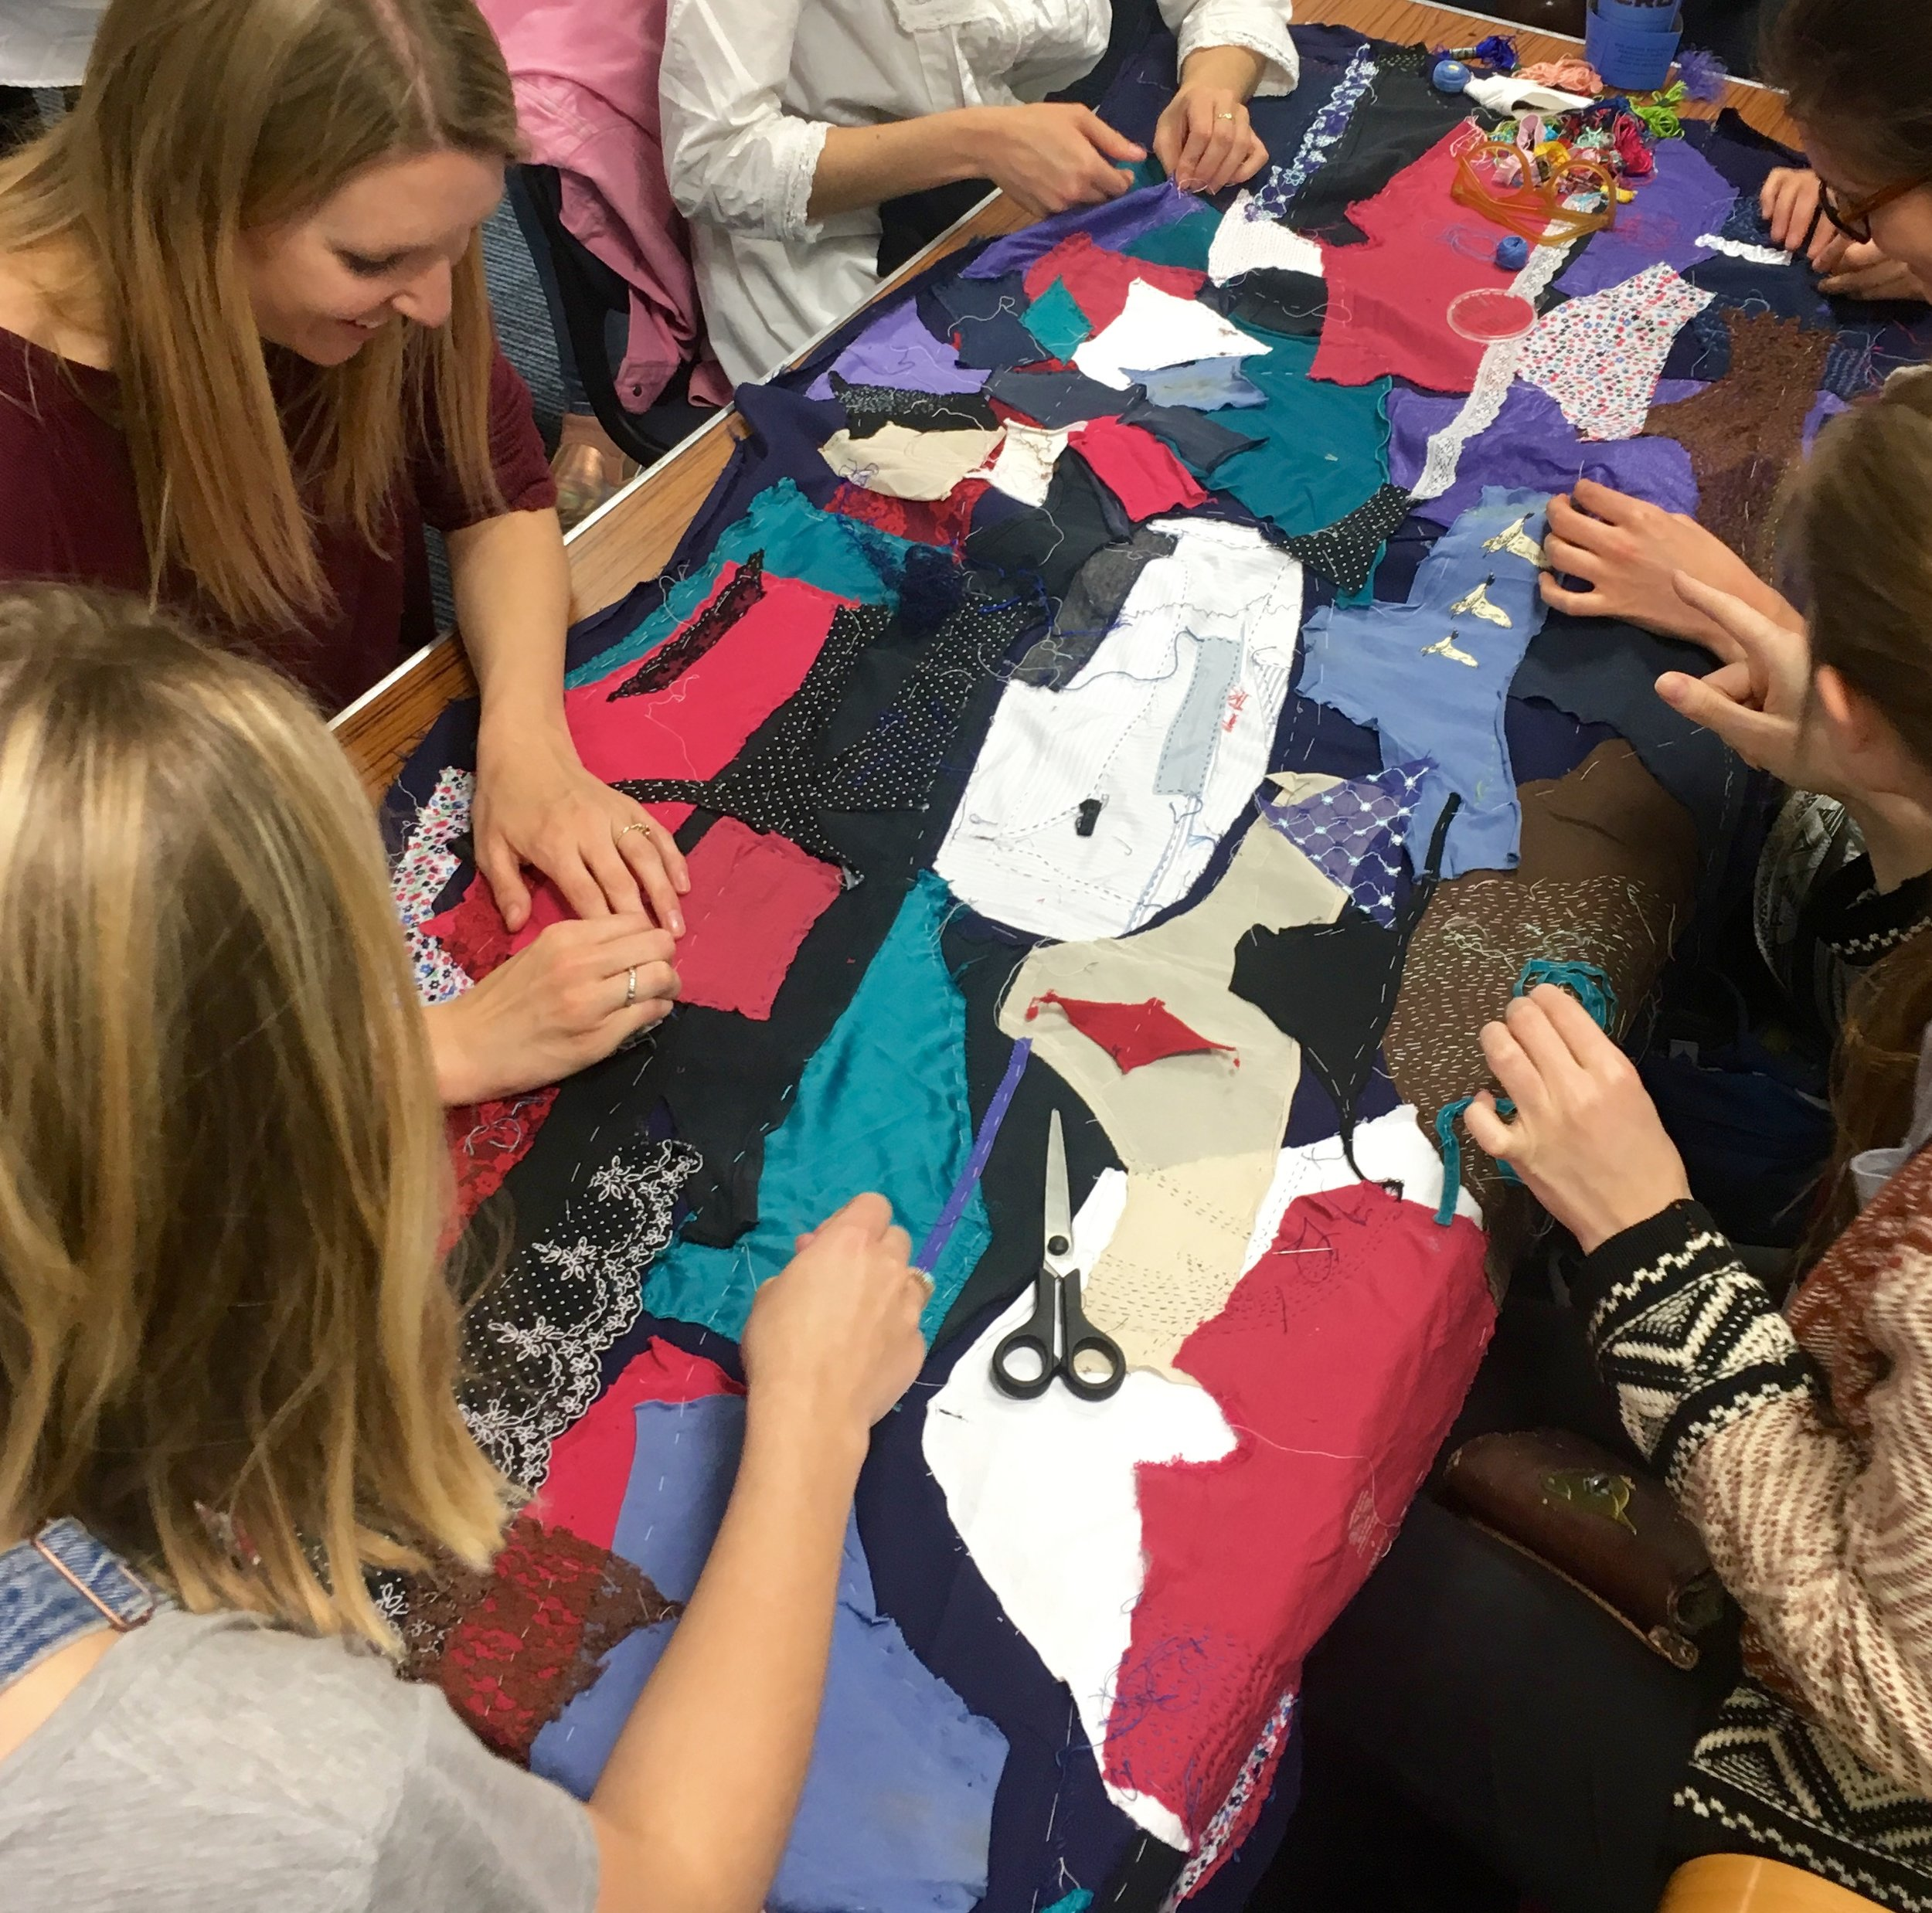 Midwifery Students quilting at The International Day of the Midwife celebrations, King's College, London.